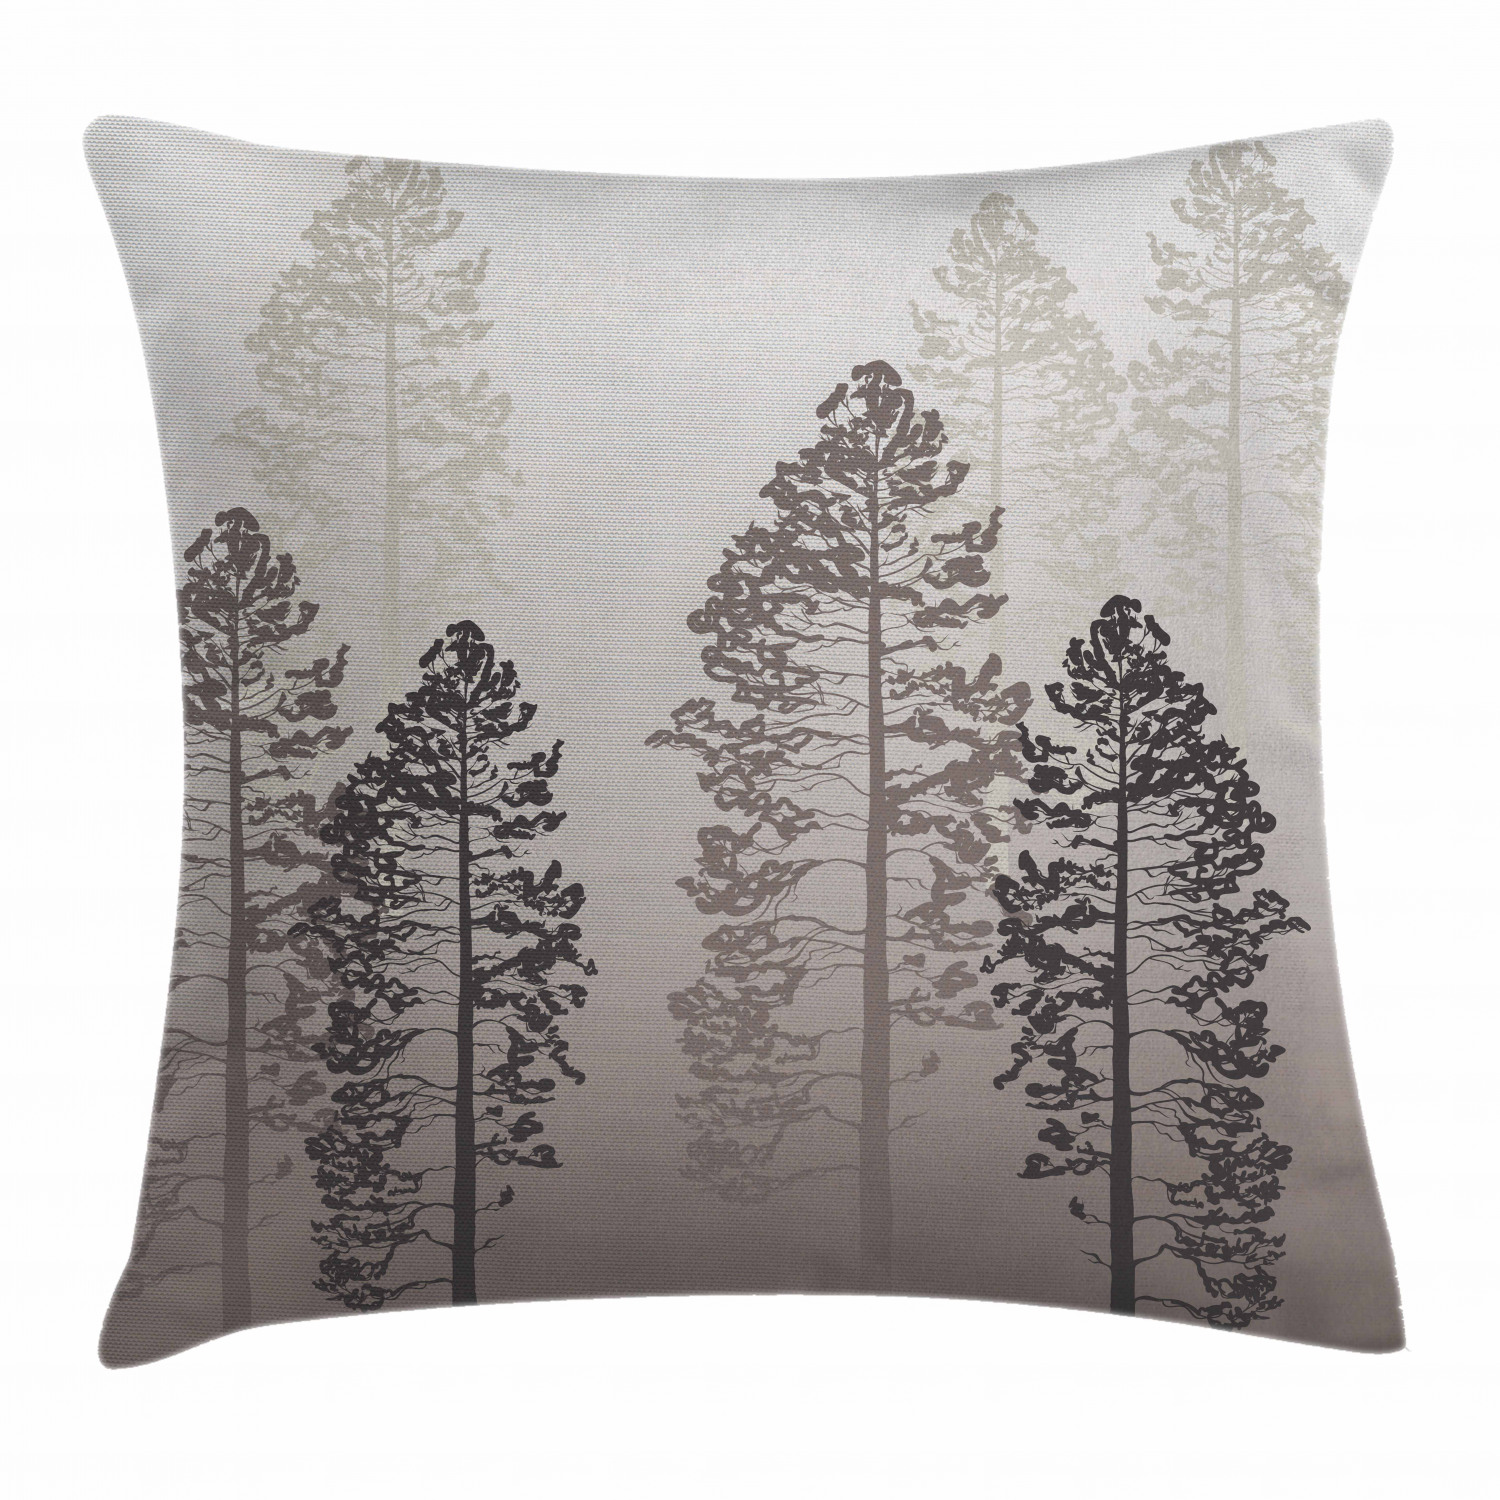 farmhouse decor throw pillow cushion cover pine trees in the forest on foggy ombre backdrop wildlife adventure artwork decorative square accent